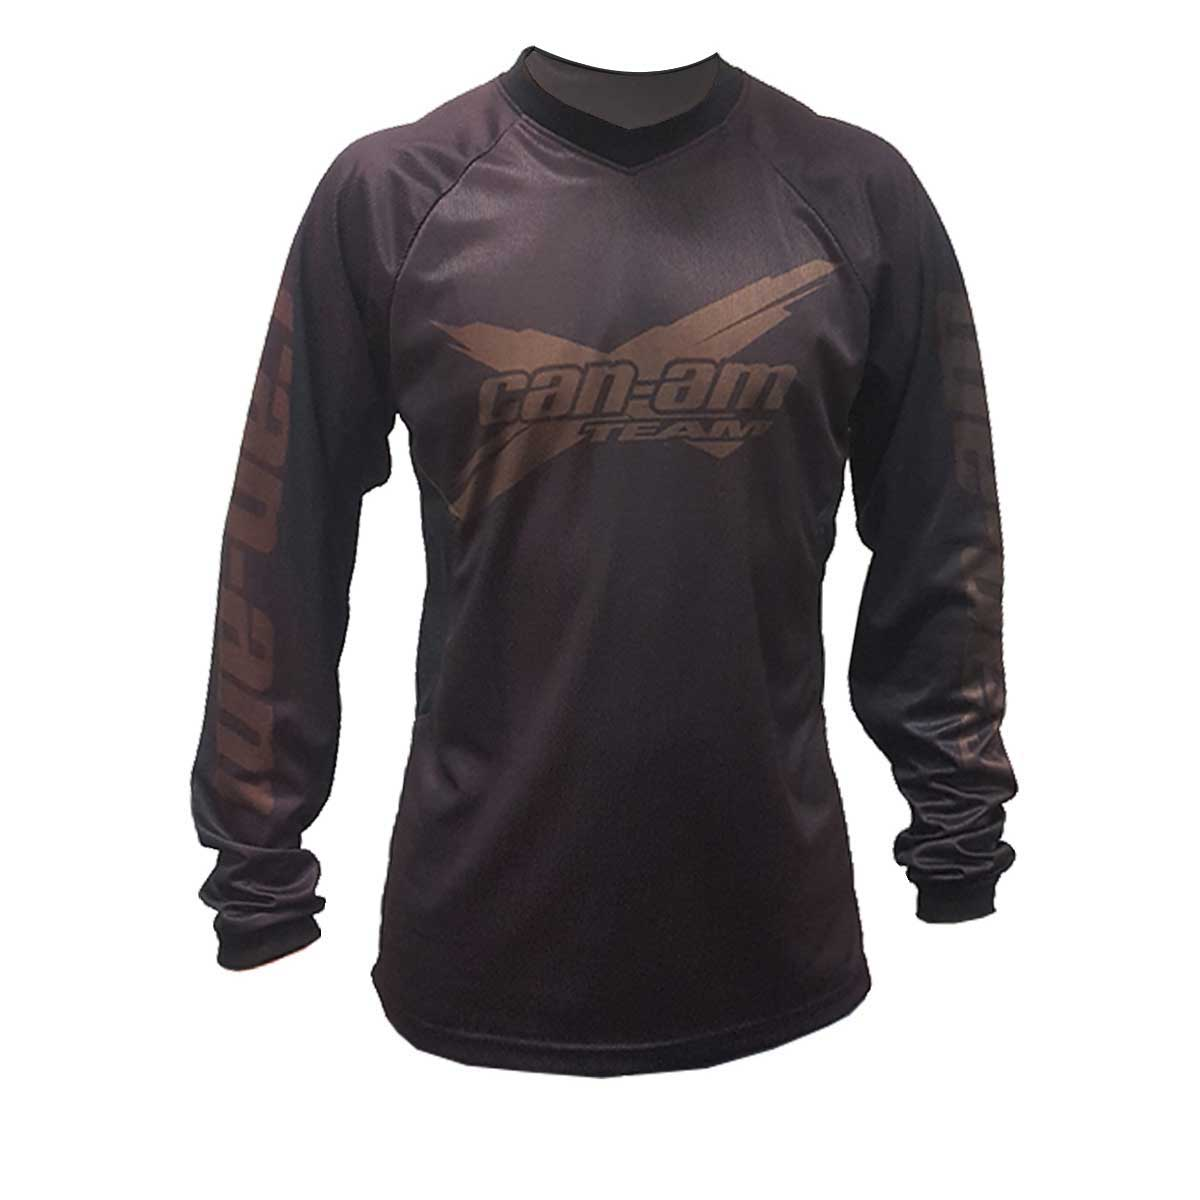 Camisa Masculina Can-Am Team Preto Fosco